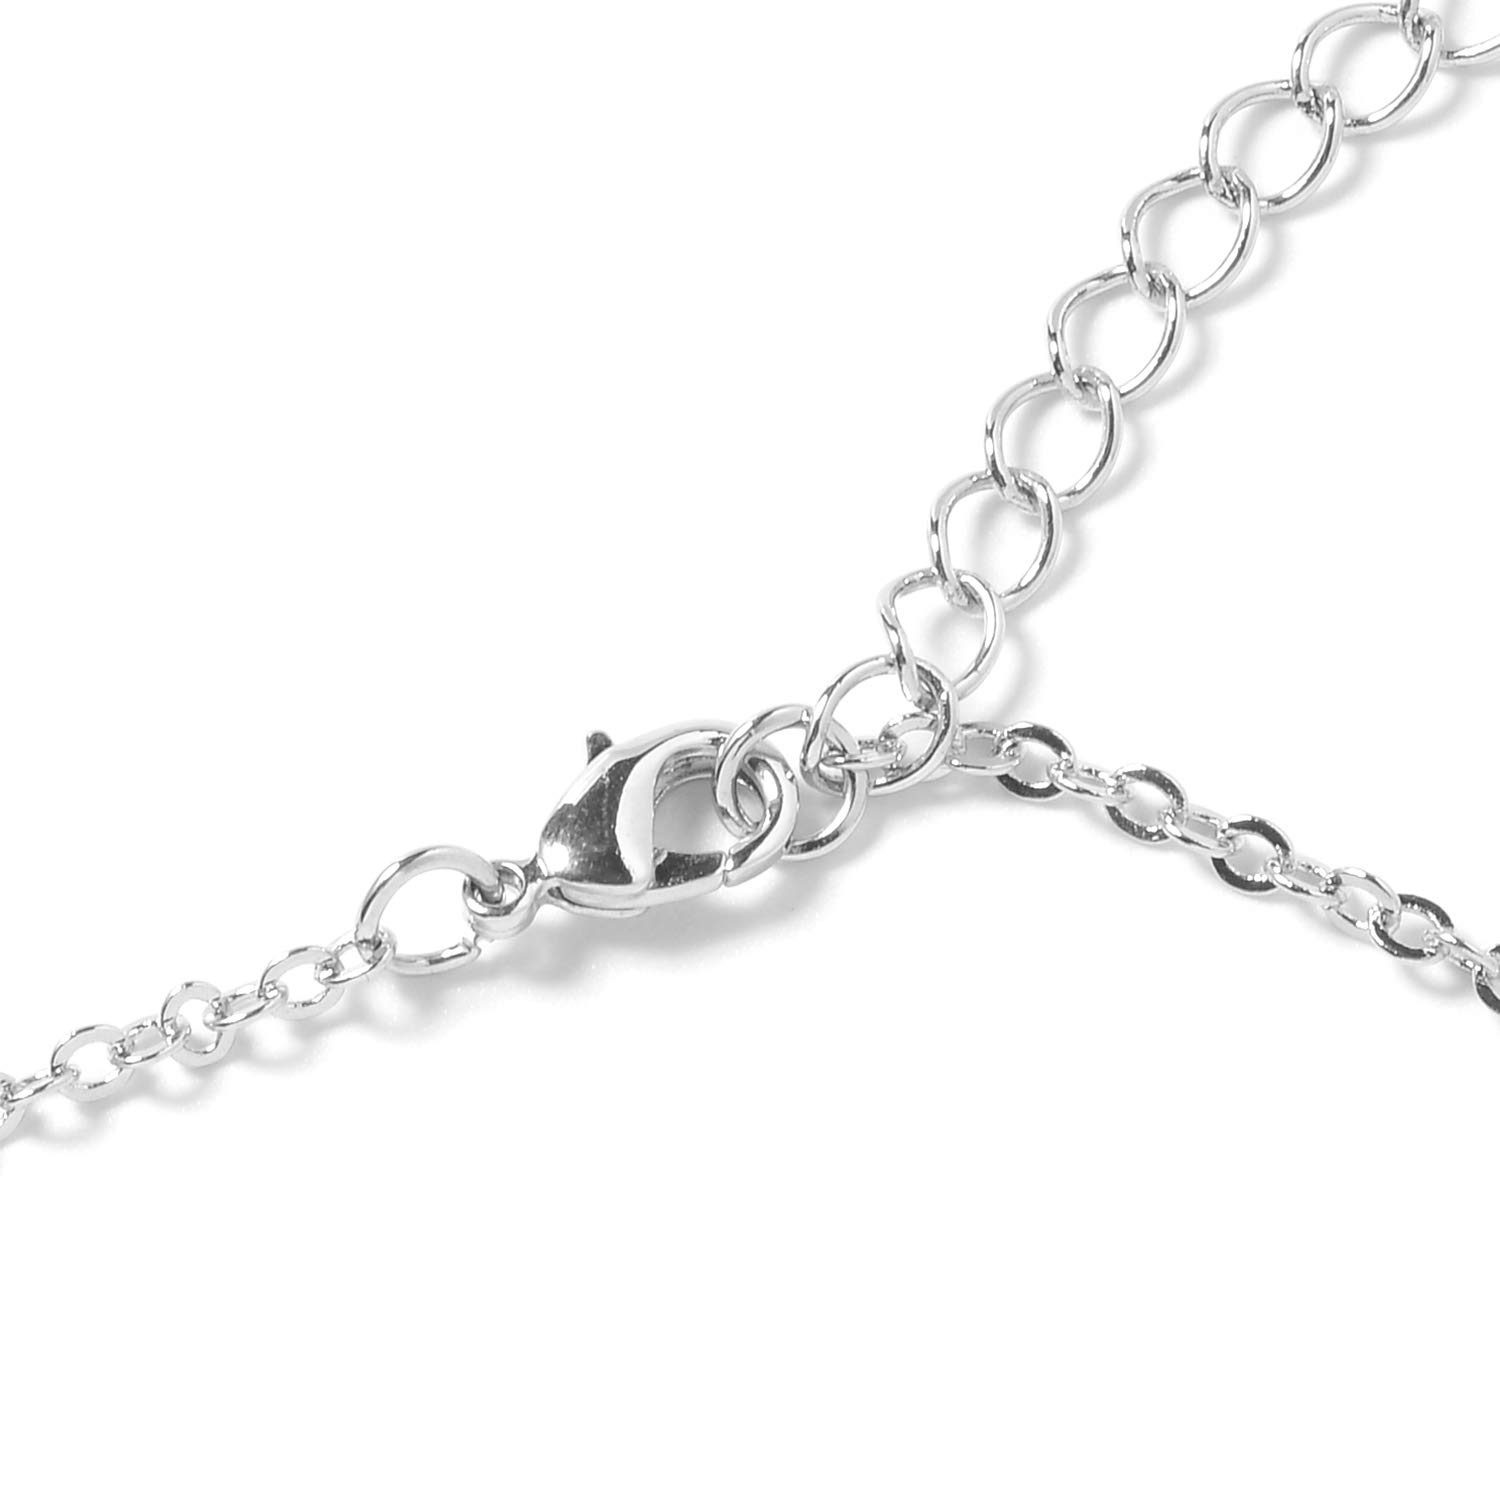 Shop LC Delivering Joy Silvertone White Glass Chain Pendant Necklace for Women Gift Jewelry 29 Cttw 9.8